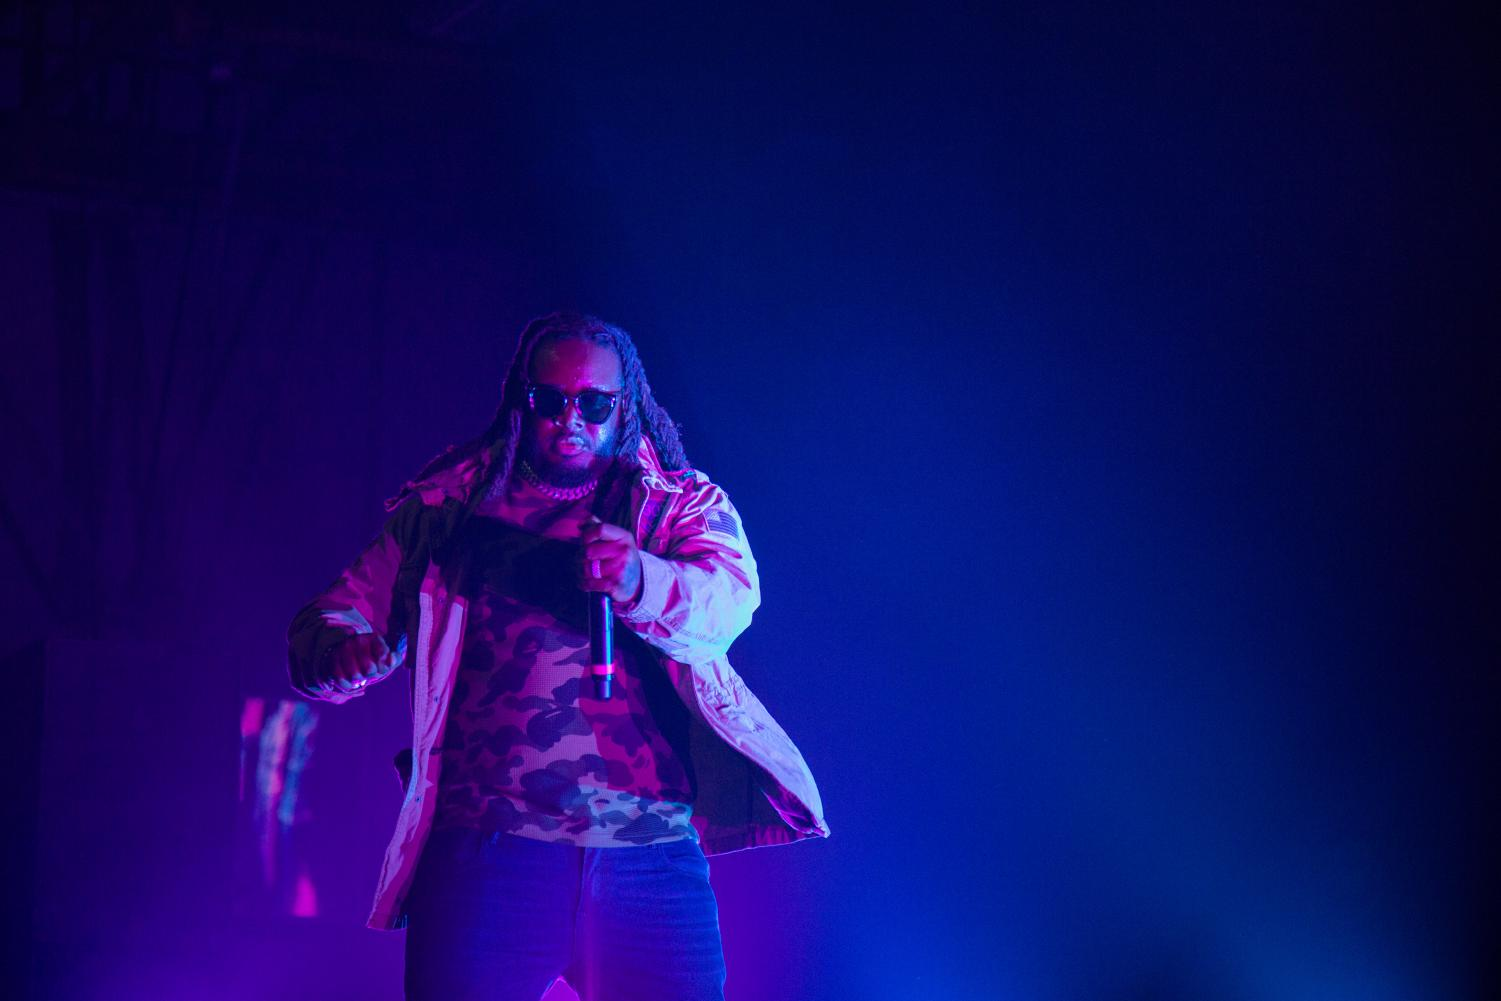 T-Pain shows off his dance moves onstage in the Regents Center.